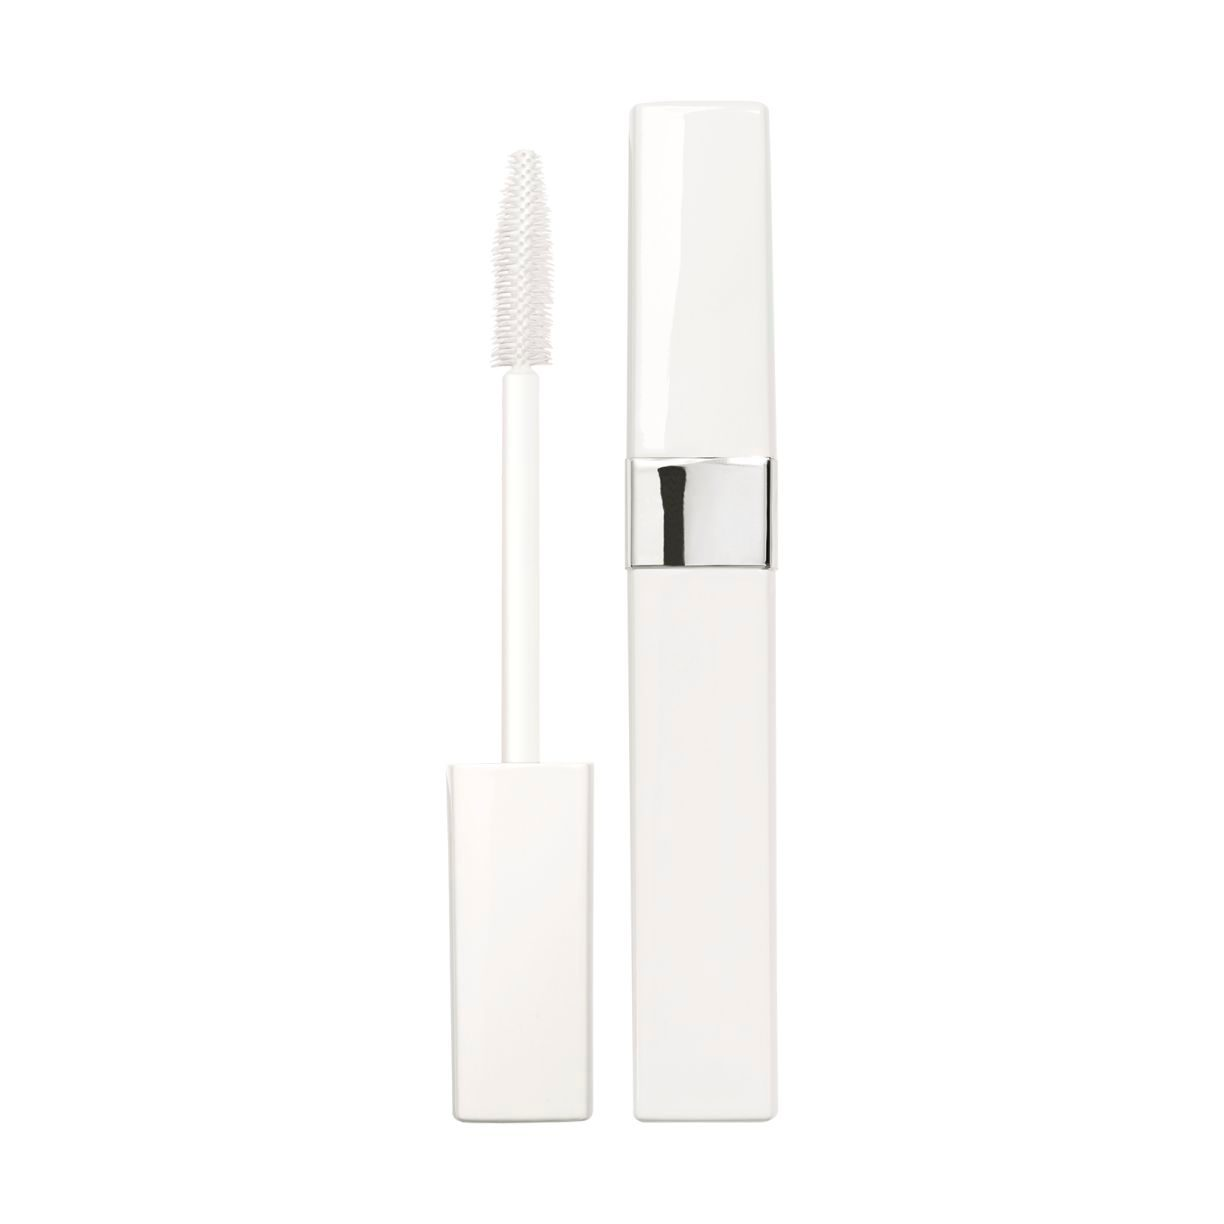 LA BASE MASCARA VOLUME AND CARE LASH PRIMER 6g